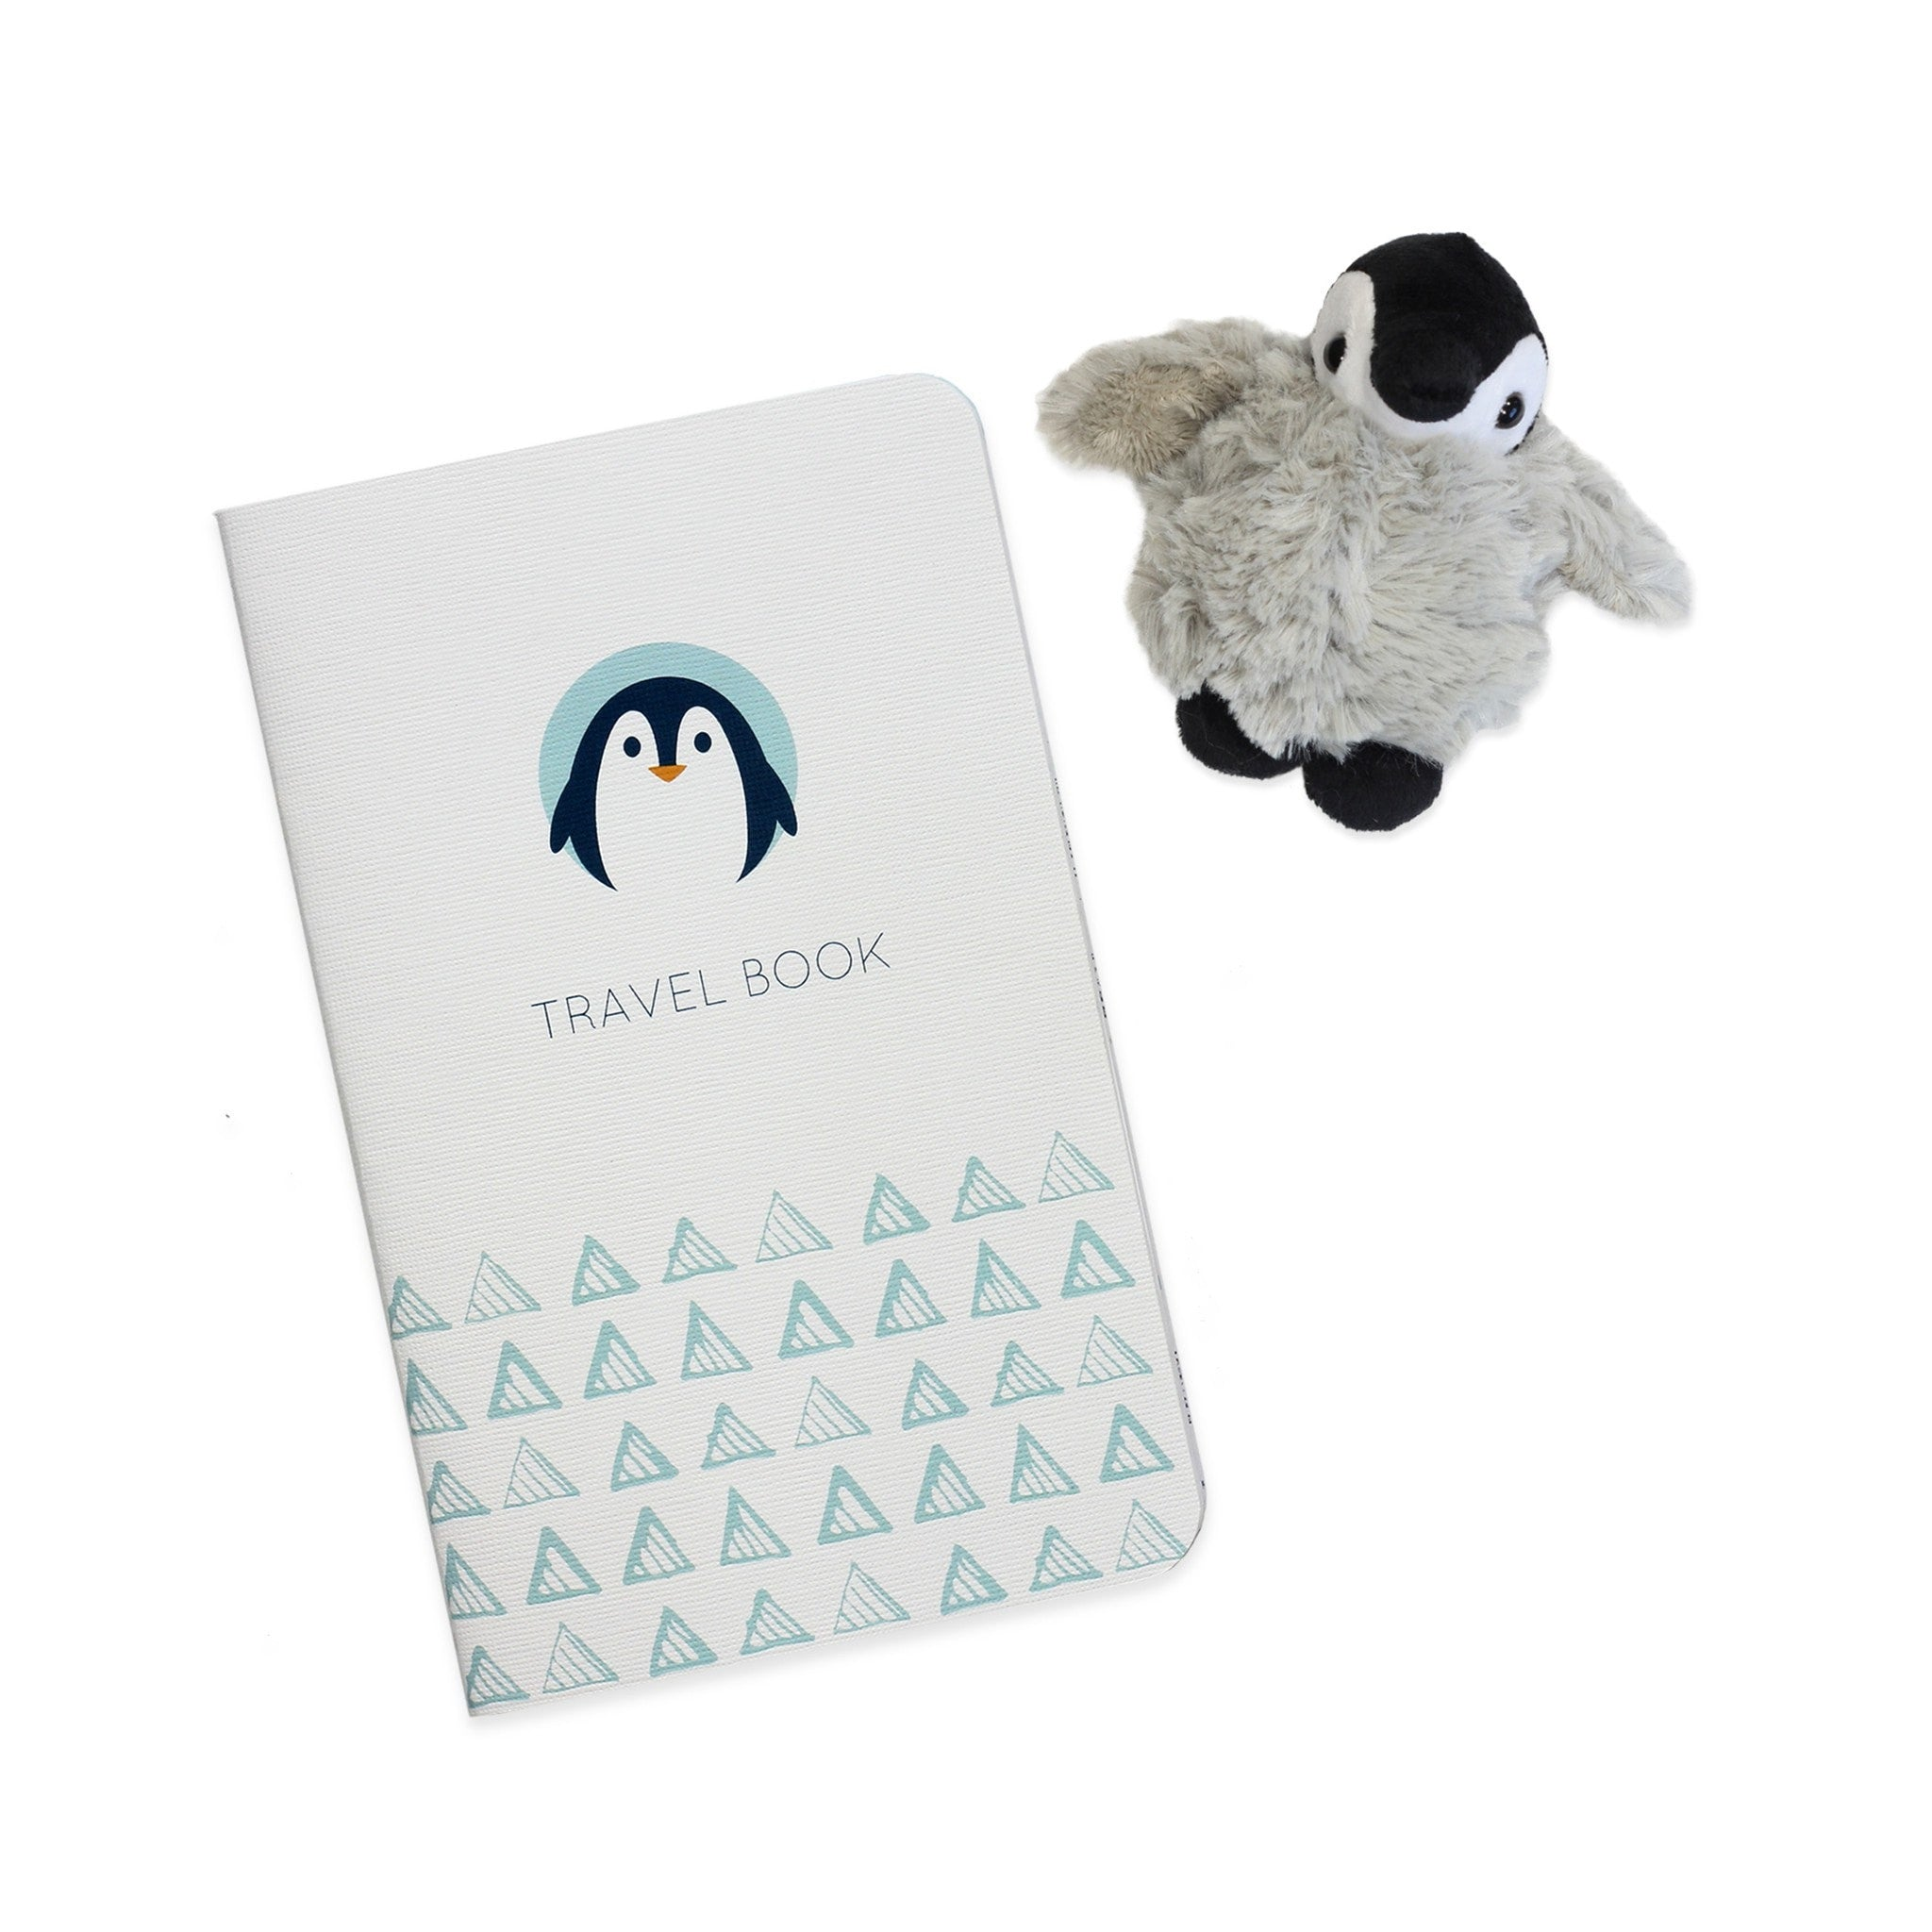 Penguino & Travel Book Set